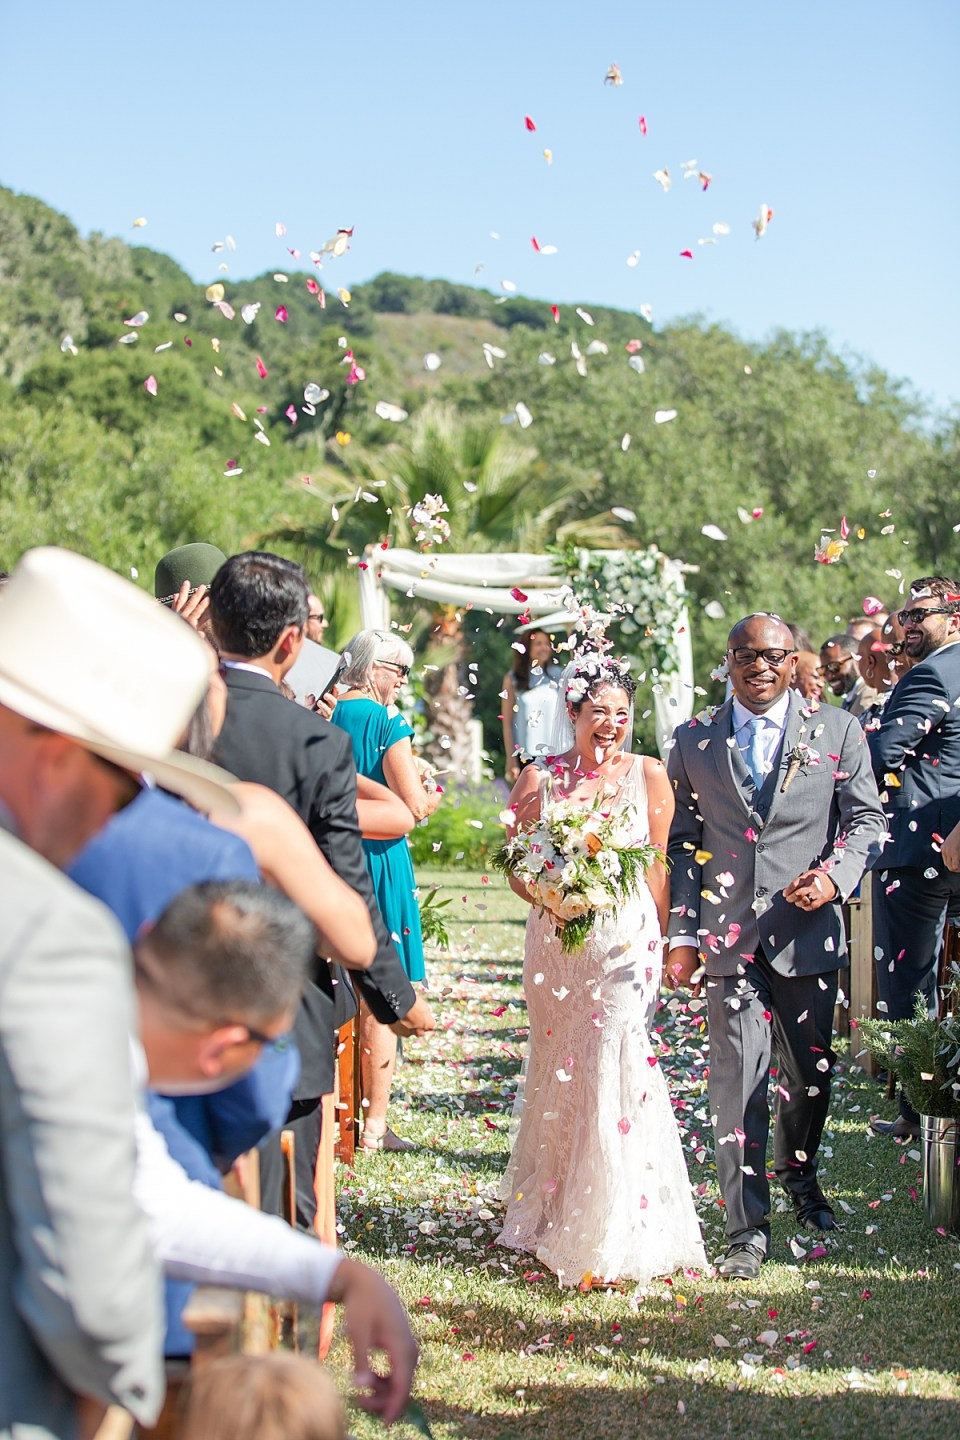 Brandi & Victor coming down the aisle as husband and wife with flower petals in the air thrown by their families at their Rancho San Julian Wedding venue in Santa Barbara county, California.